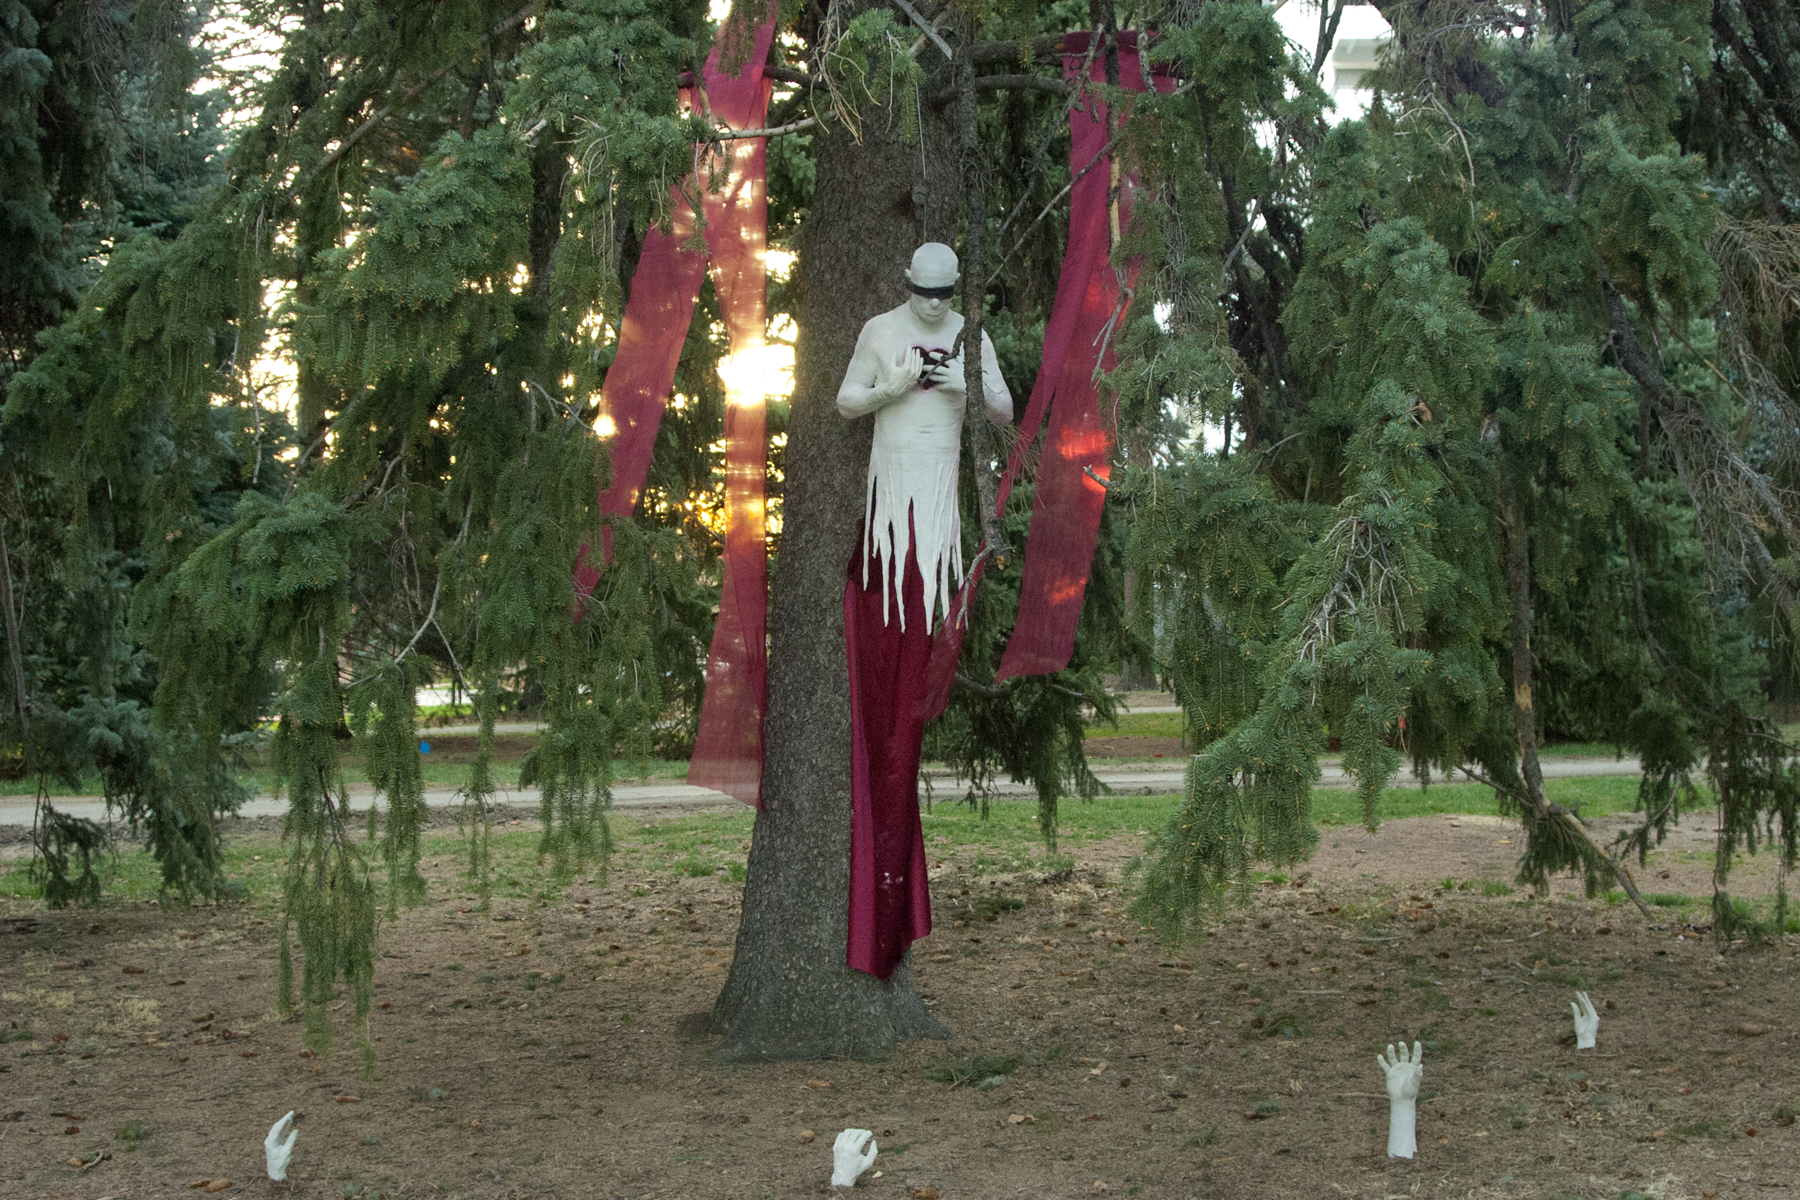 The Spectre in Cheeseman Park, Denver. Image courtesy of The Impossible Winterbourne.